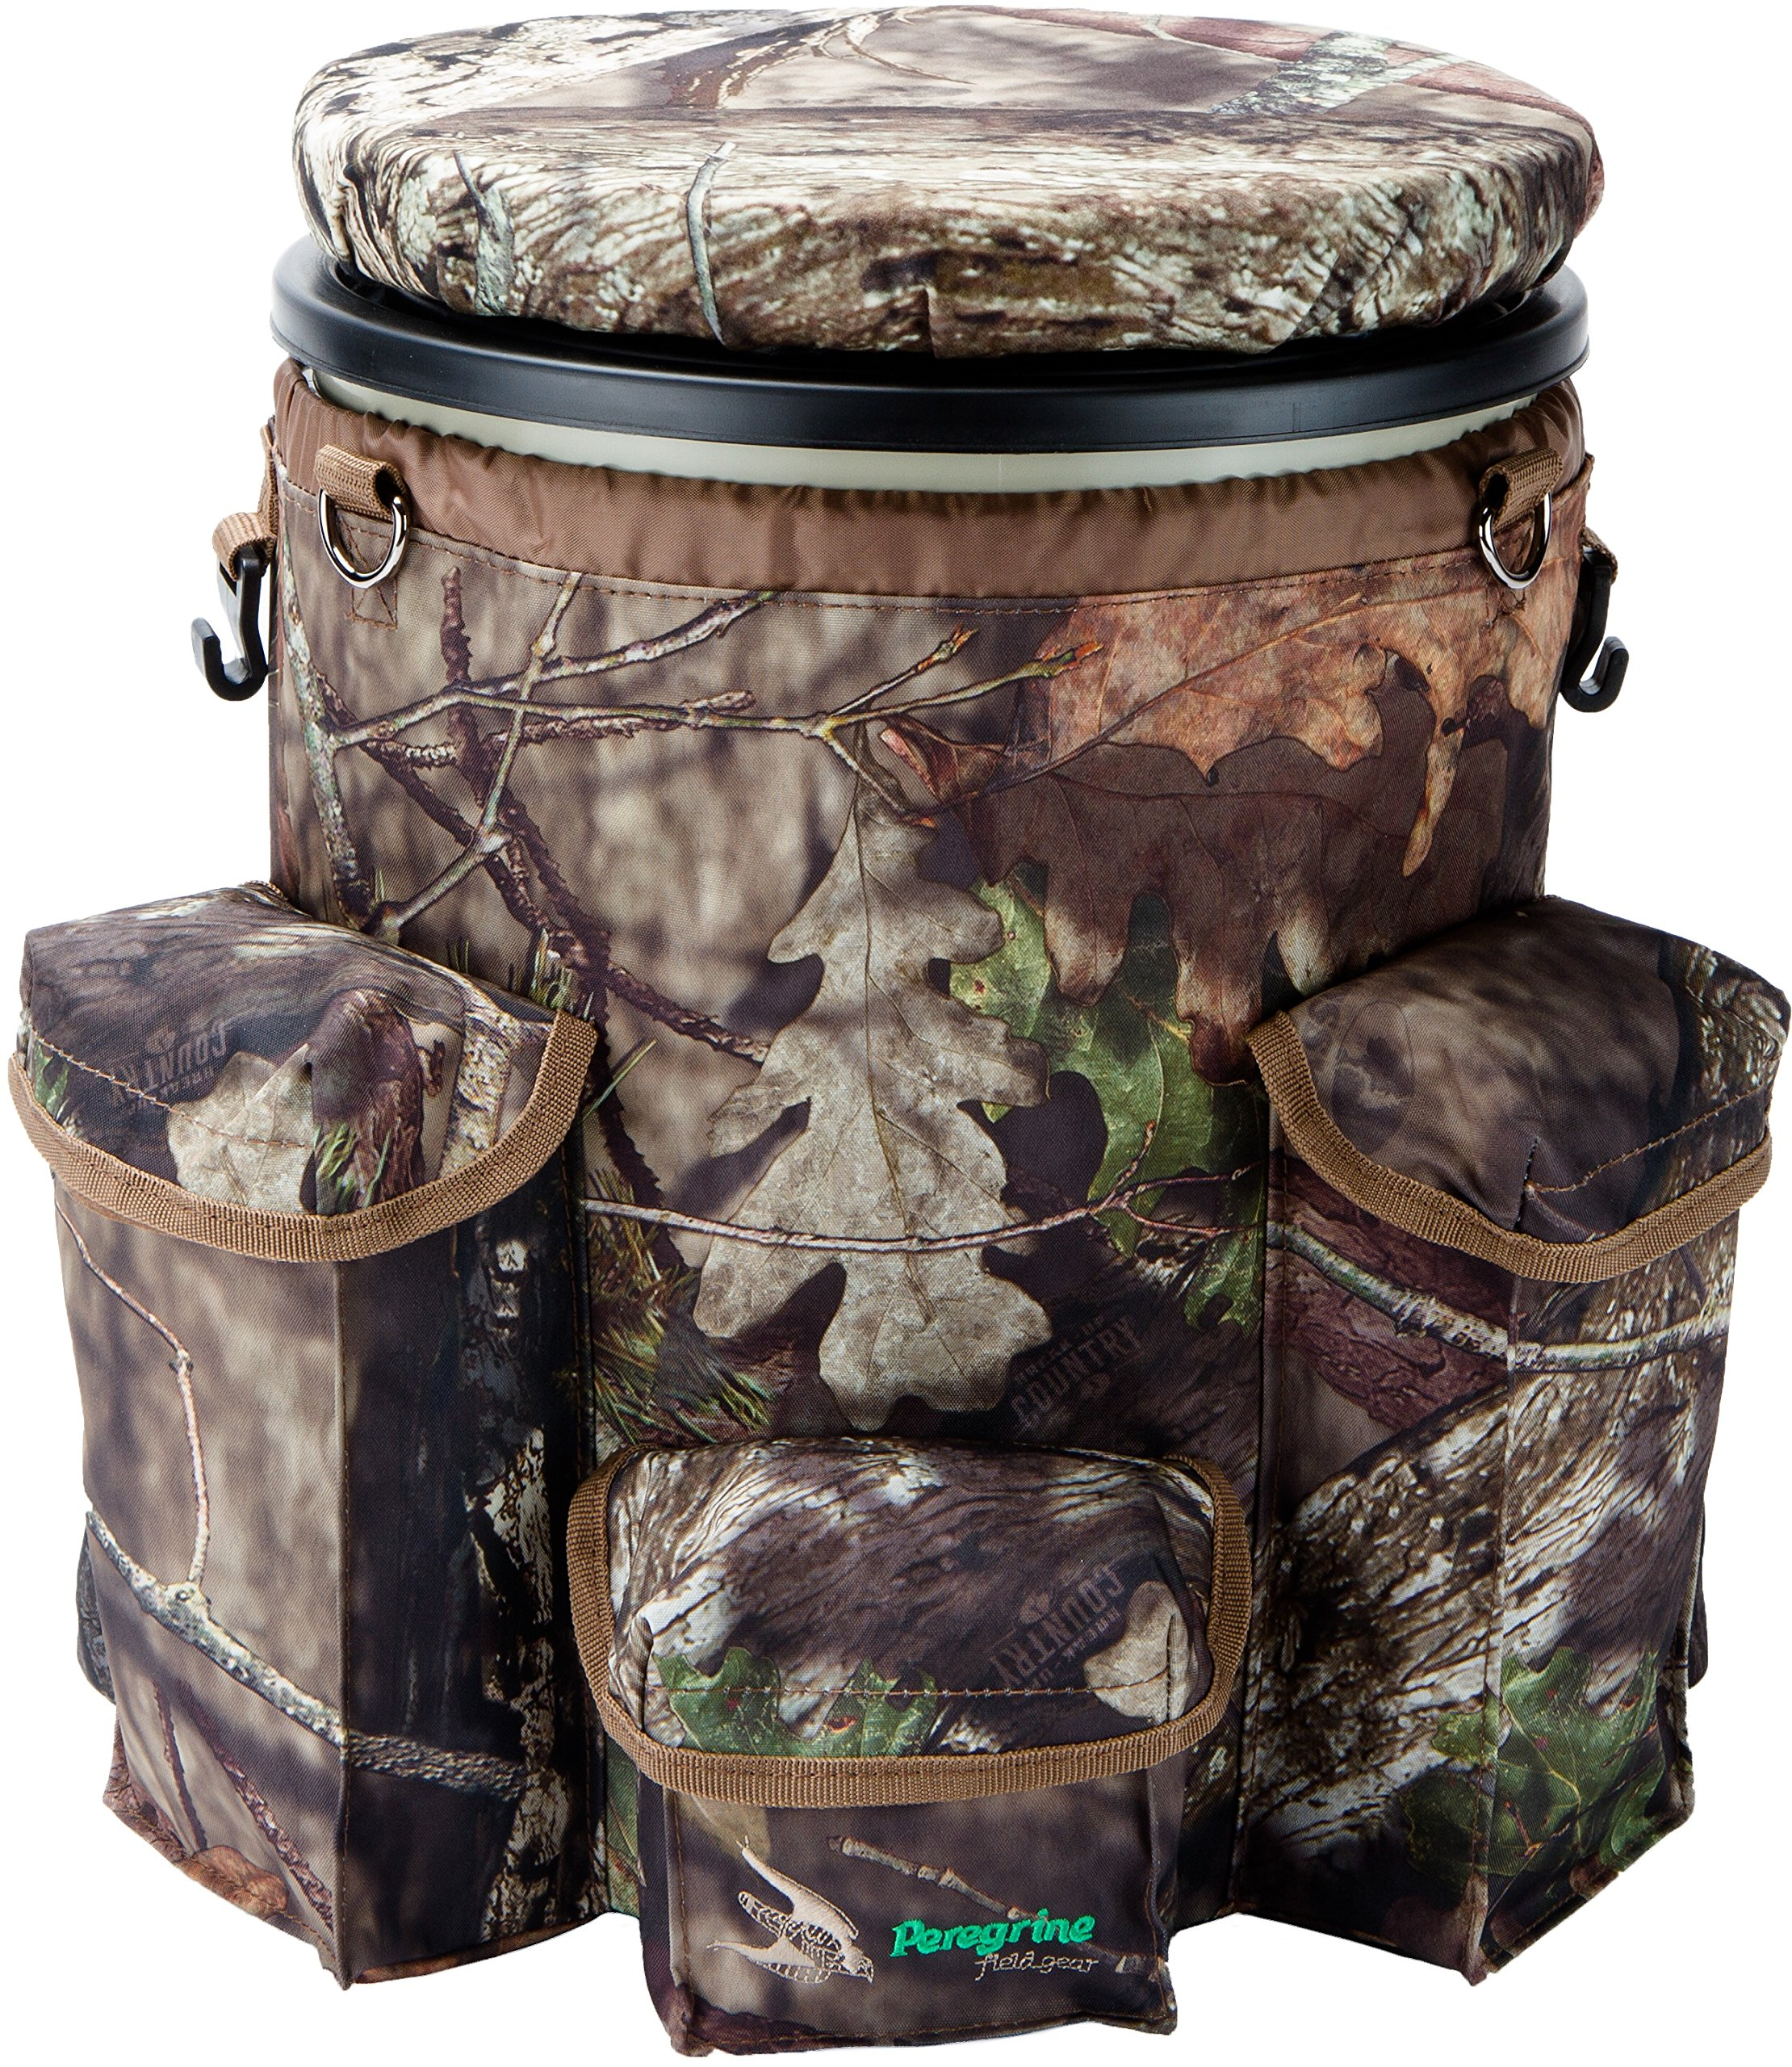 Peregrine Venture Bucket Pack Field Gear Venture Bucket Pack in Break-Up Country, 5 gallon by Peregrine (Image #1)